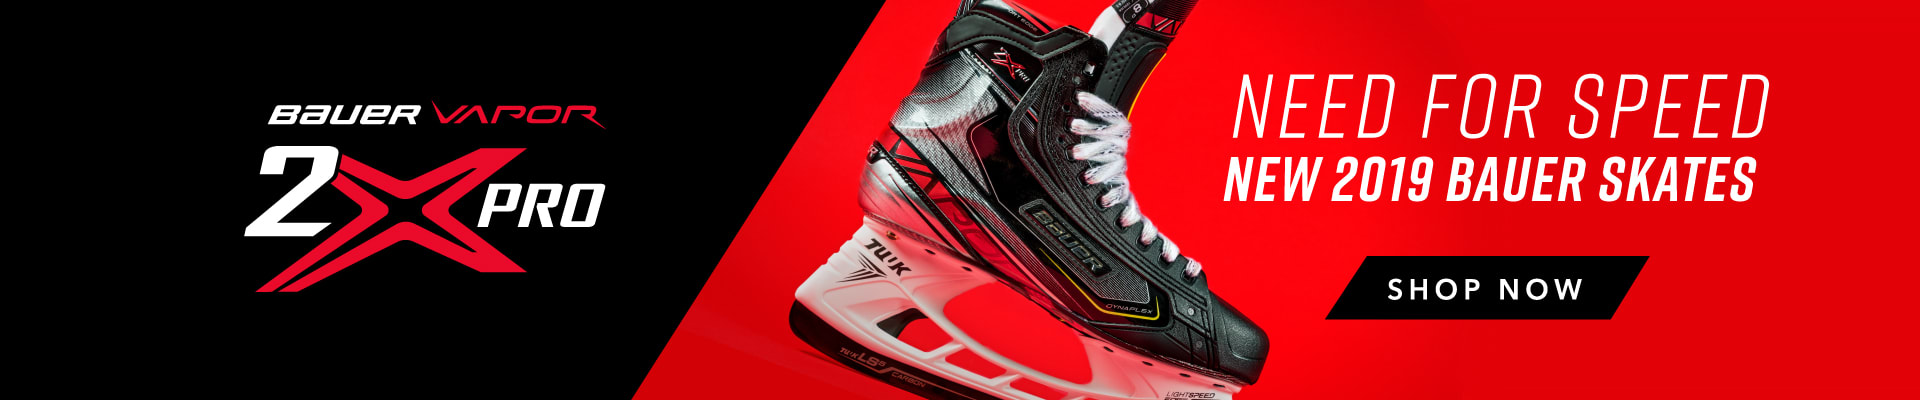 Shop New Vapor Skates